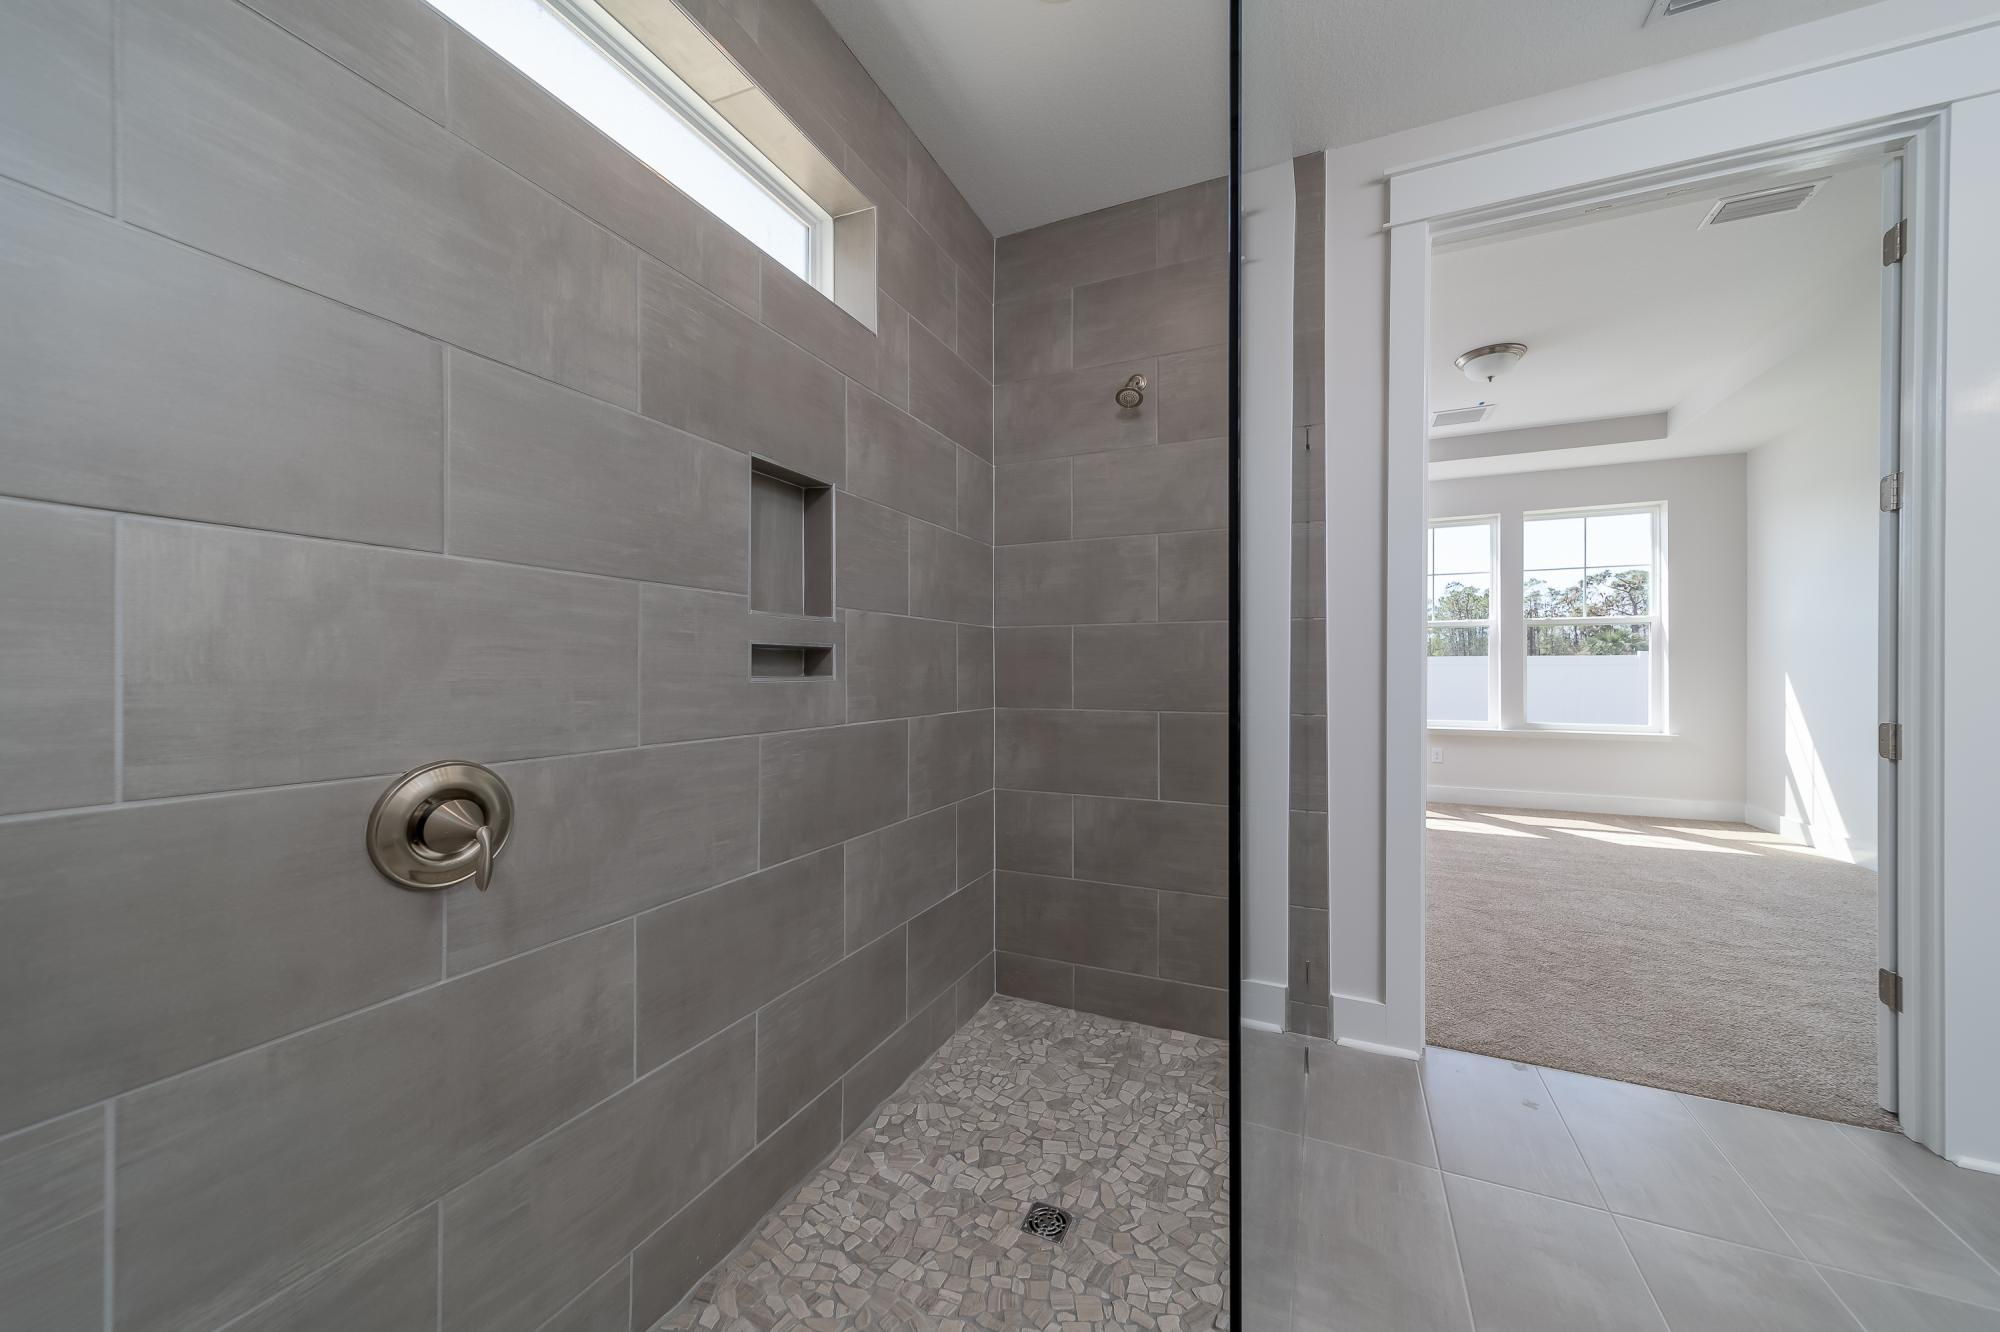 Bathroom featured in the Anna Maria By Samuel Taylor Homes in Panama City, FL